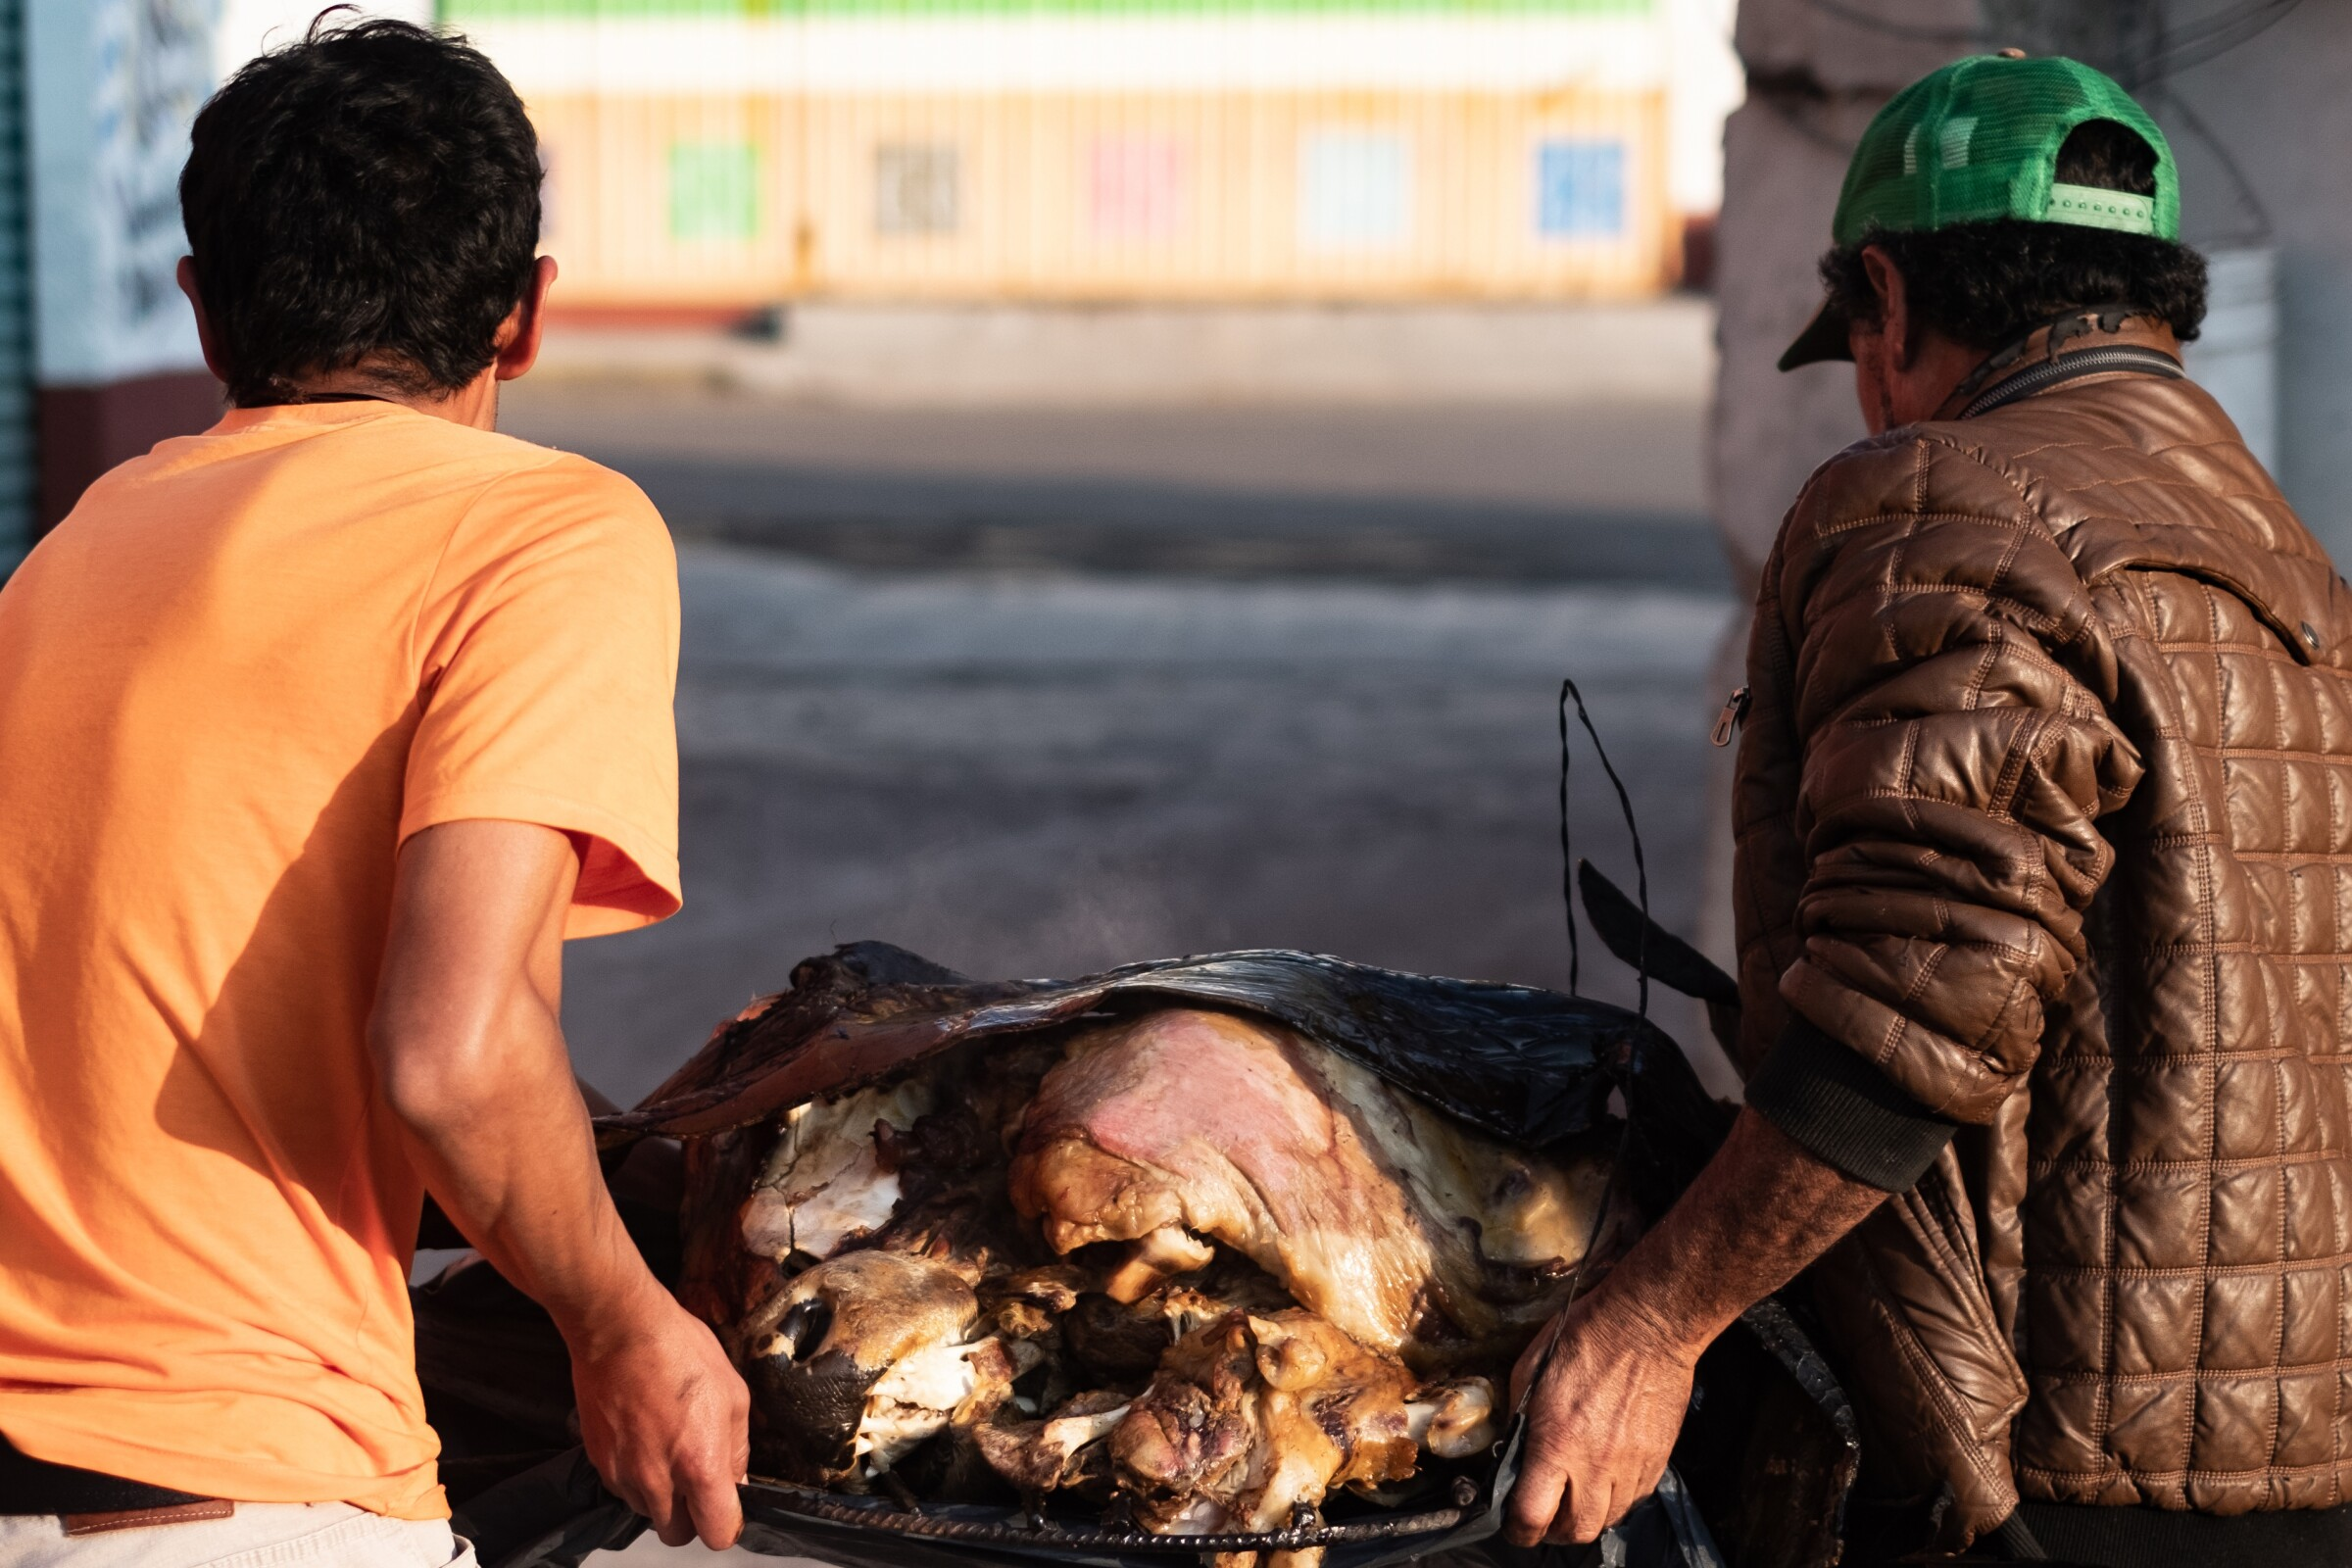 Barbacoa, slowly cooked in a hoyo for 14 hours, is carried out to prepared